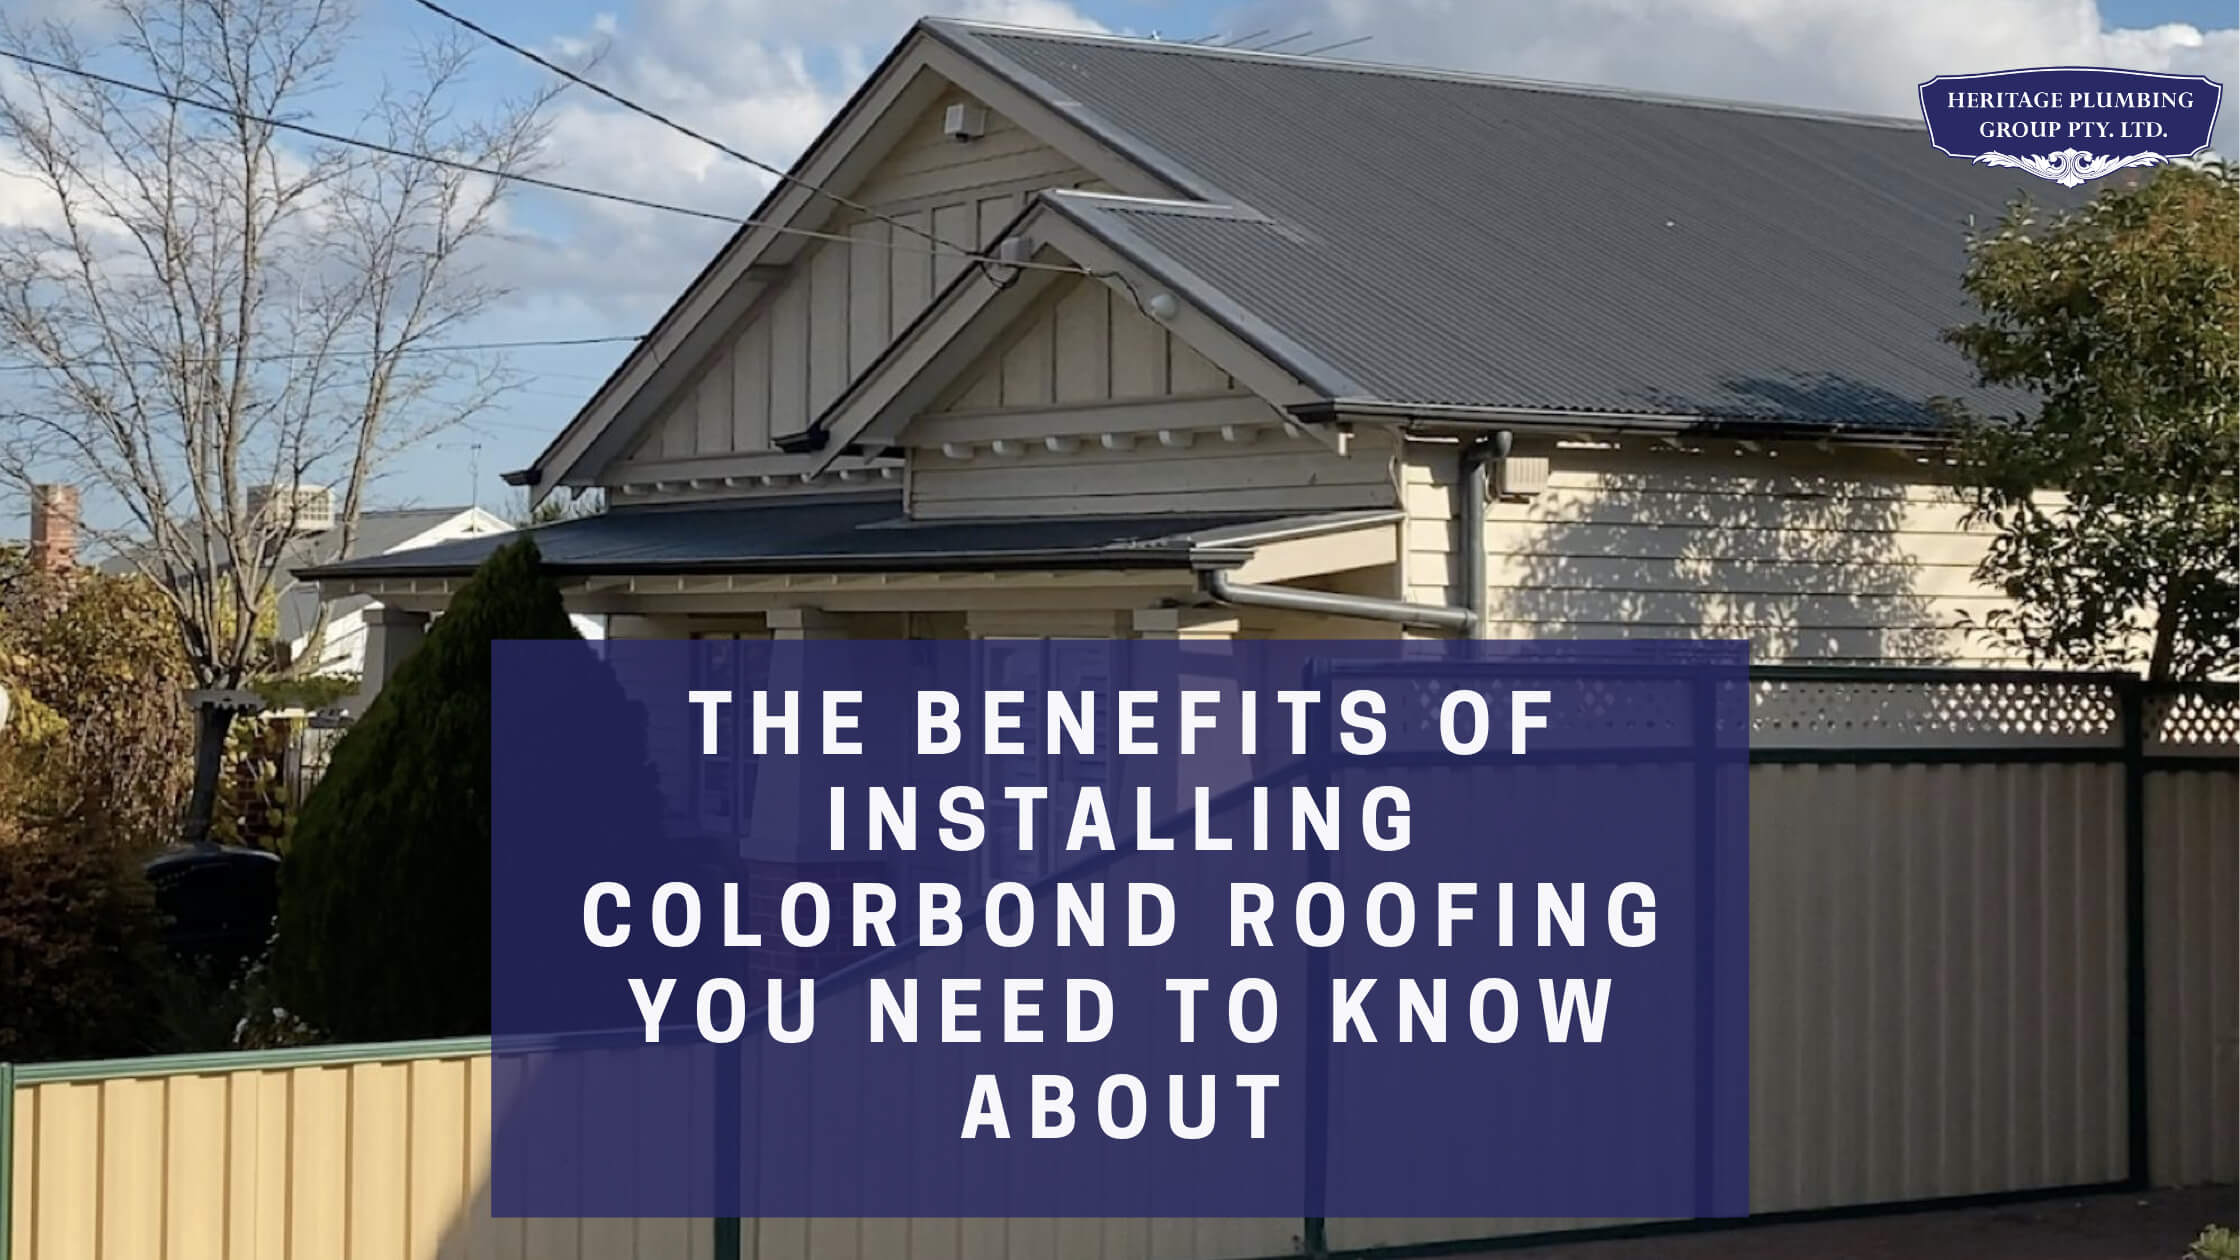 installing colorbond roofing benefits